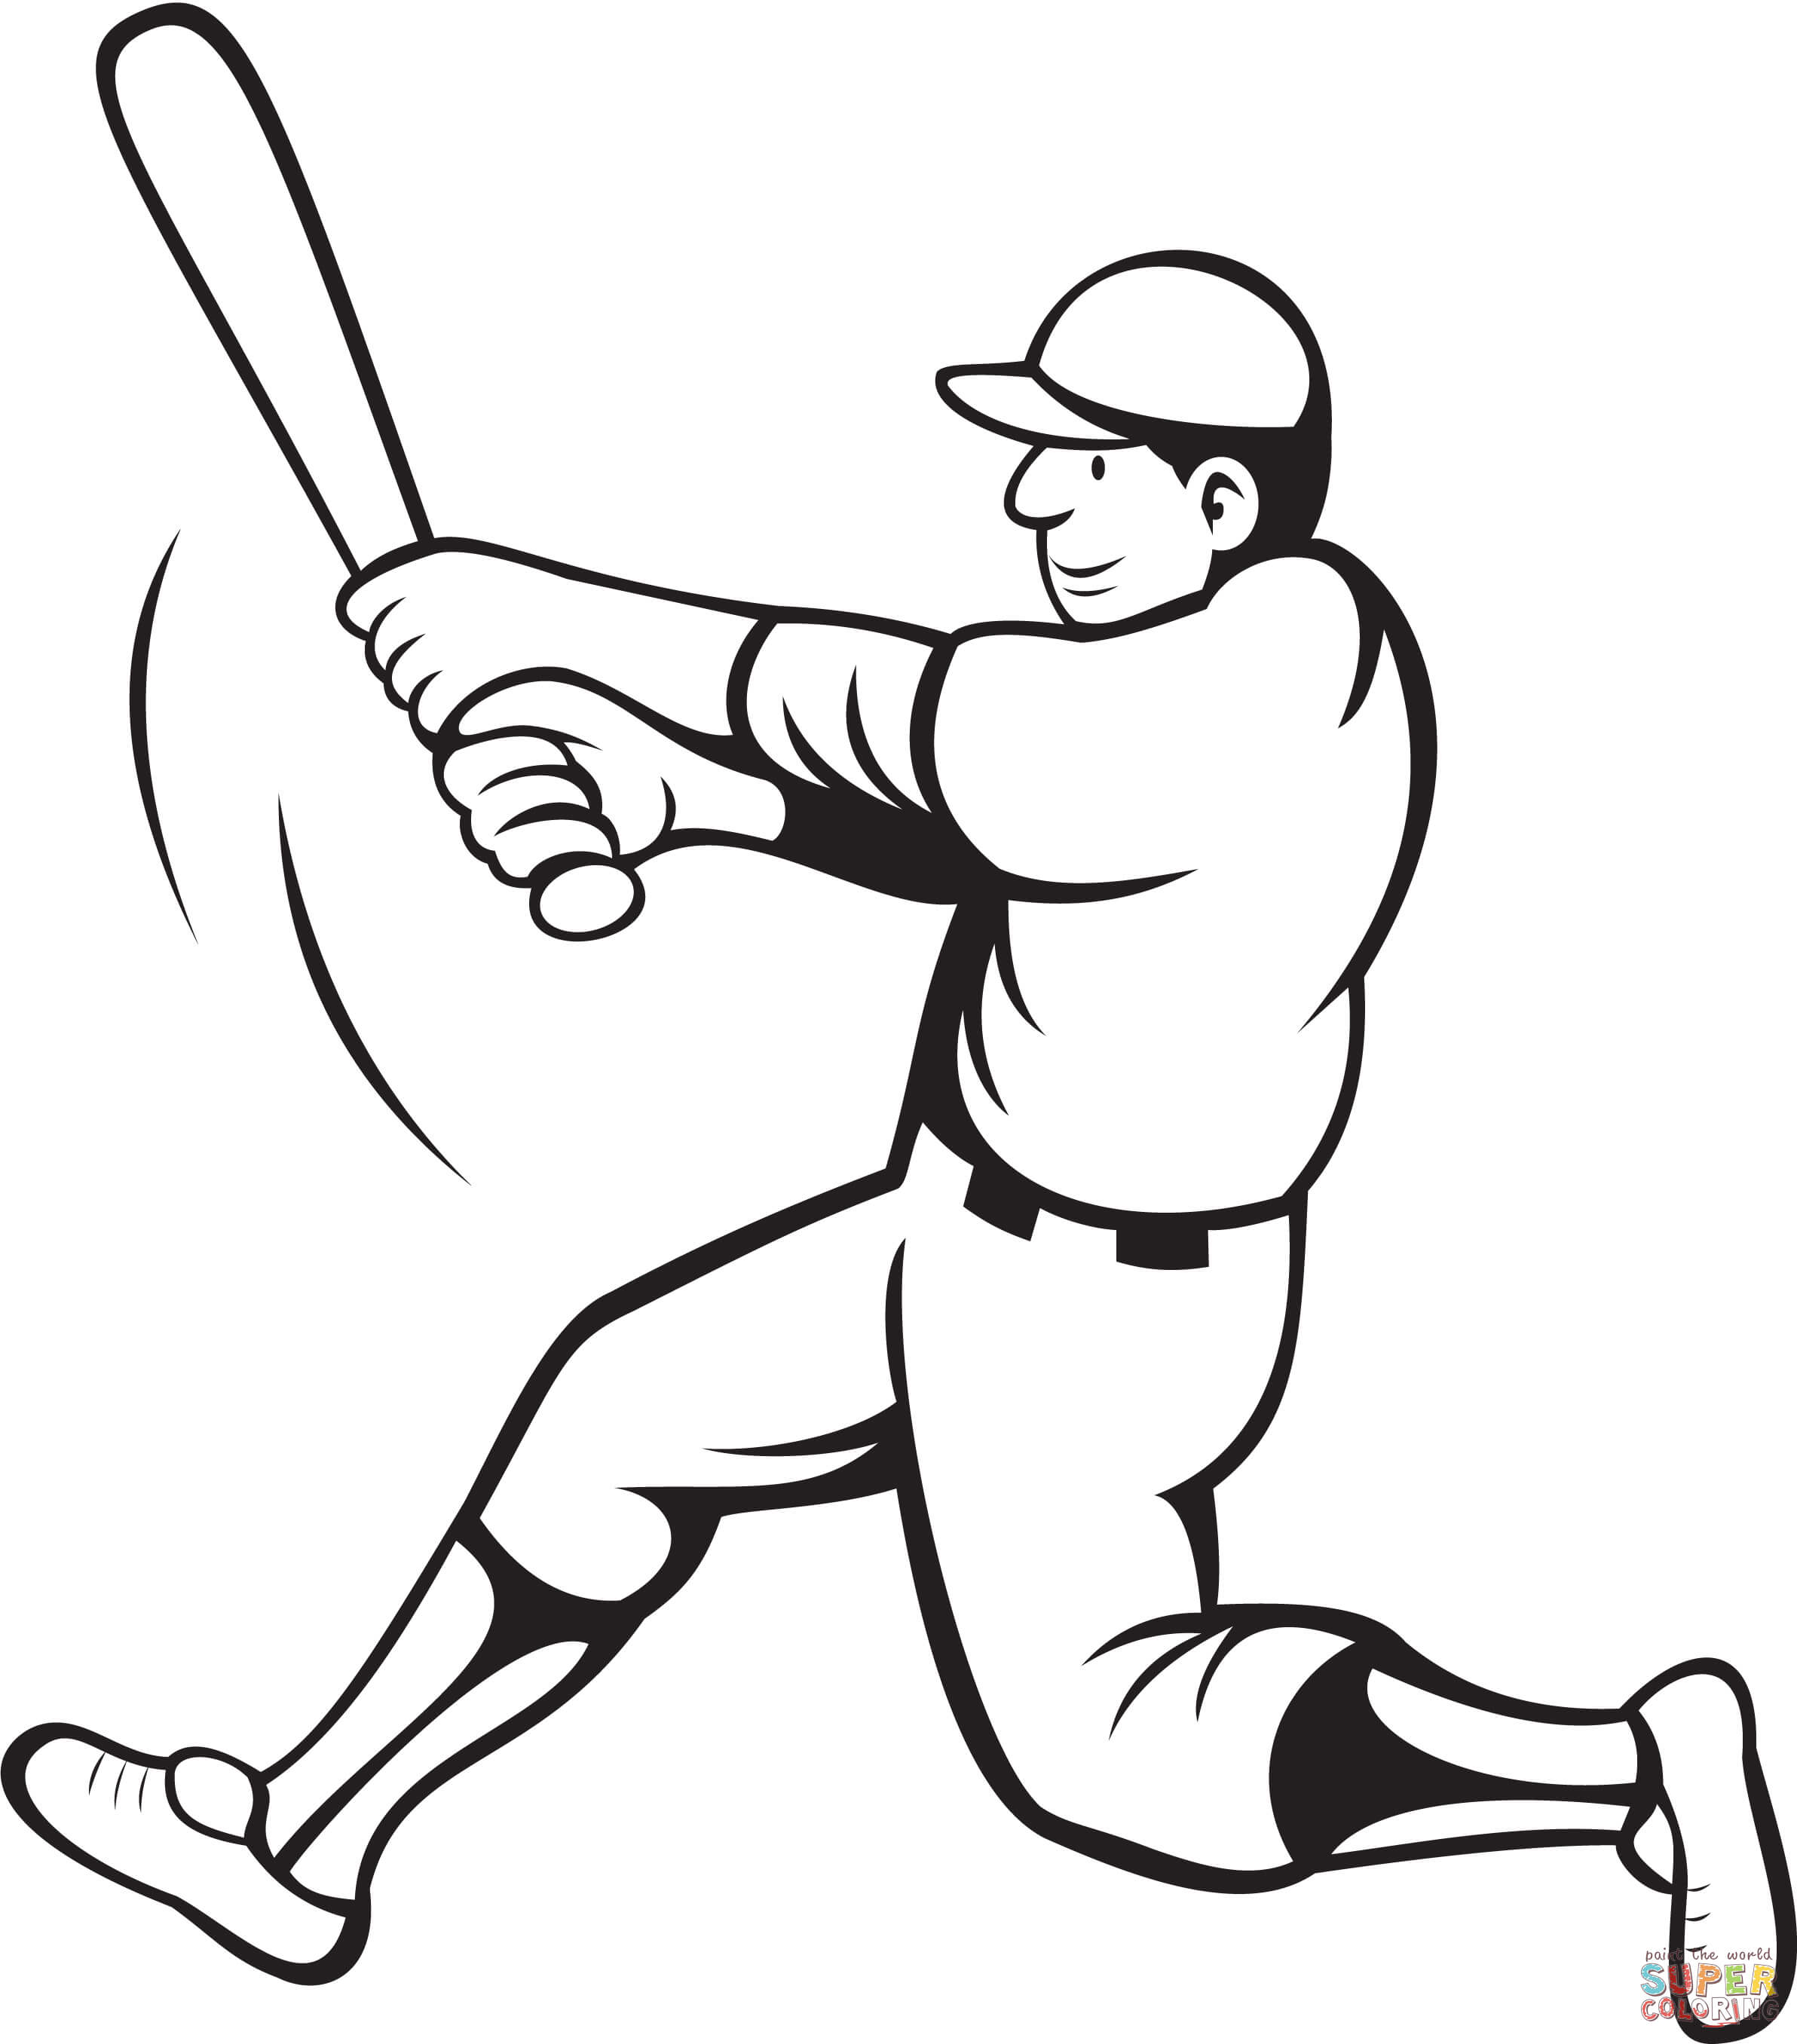 2384x2712 Coloring Pages Baseball Printable For Good Draw Paint Kids